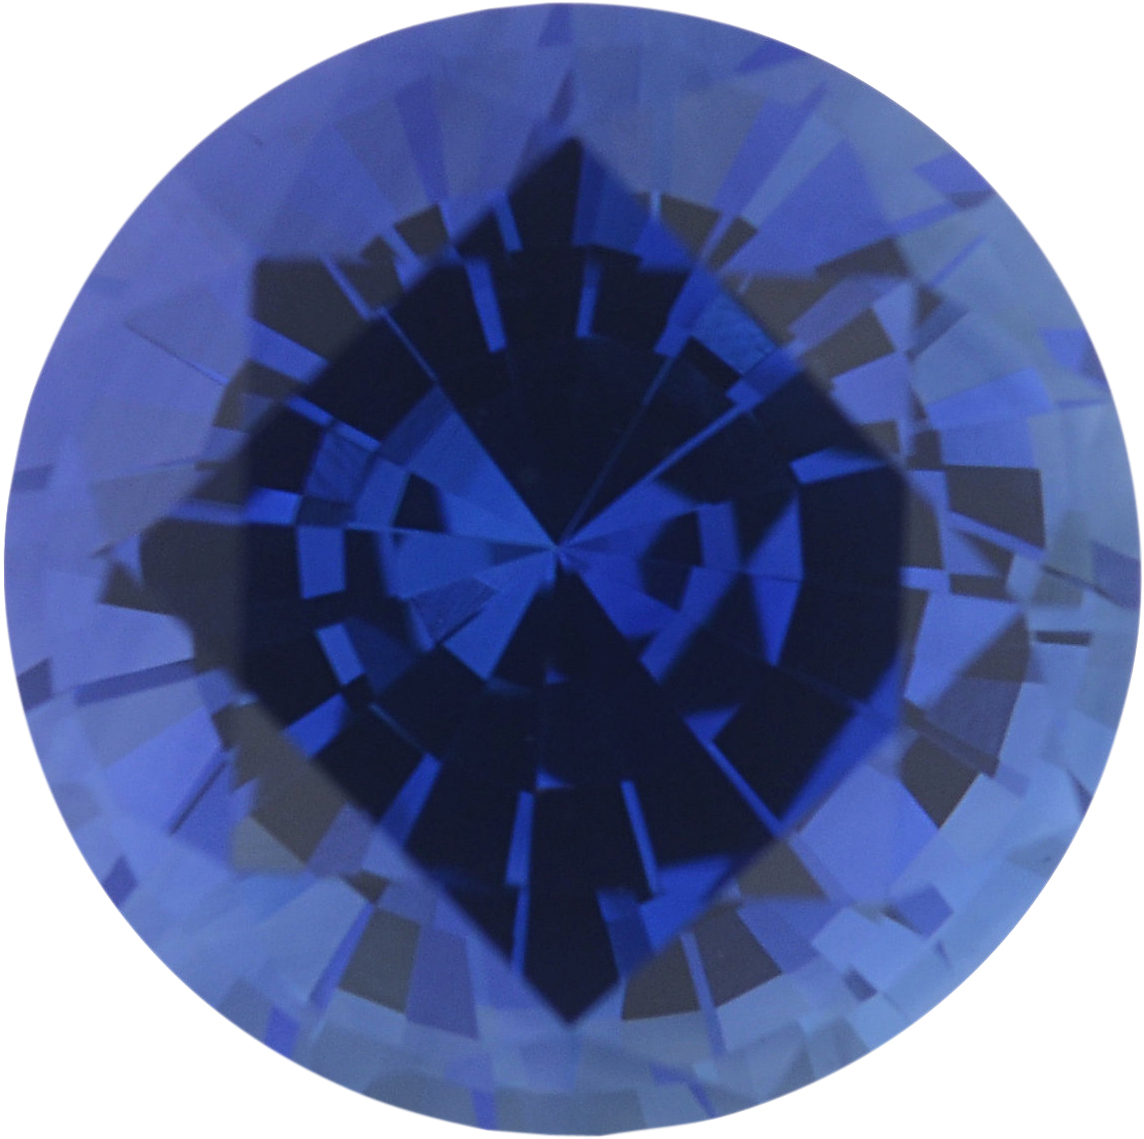 1.05 carats Blue Loose Sapphire Gemstone in Round Cut, 5.92 mm